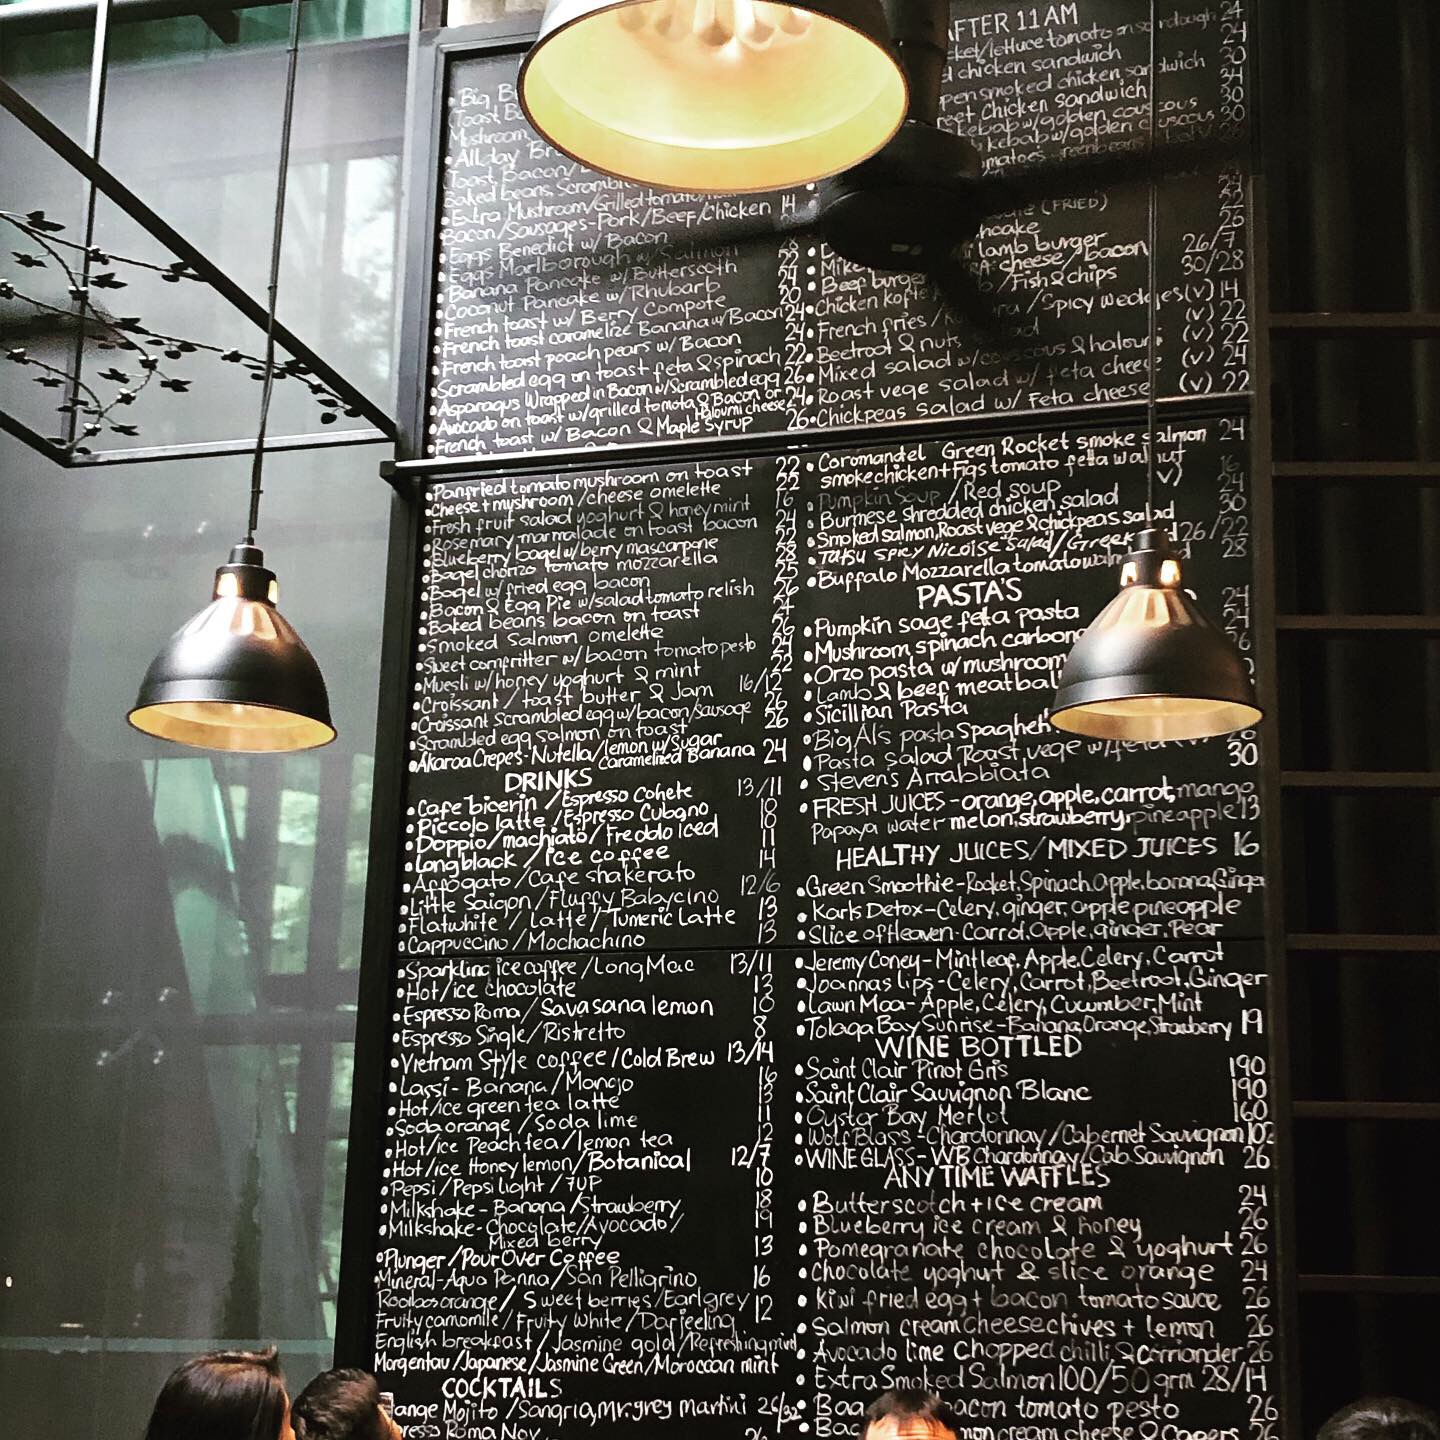 The Menu at the Antipodean Cafe was handwritten on a wall board which creates part of the ambience ...